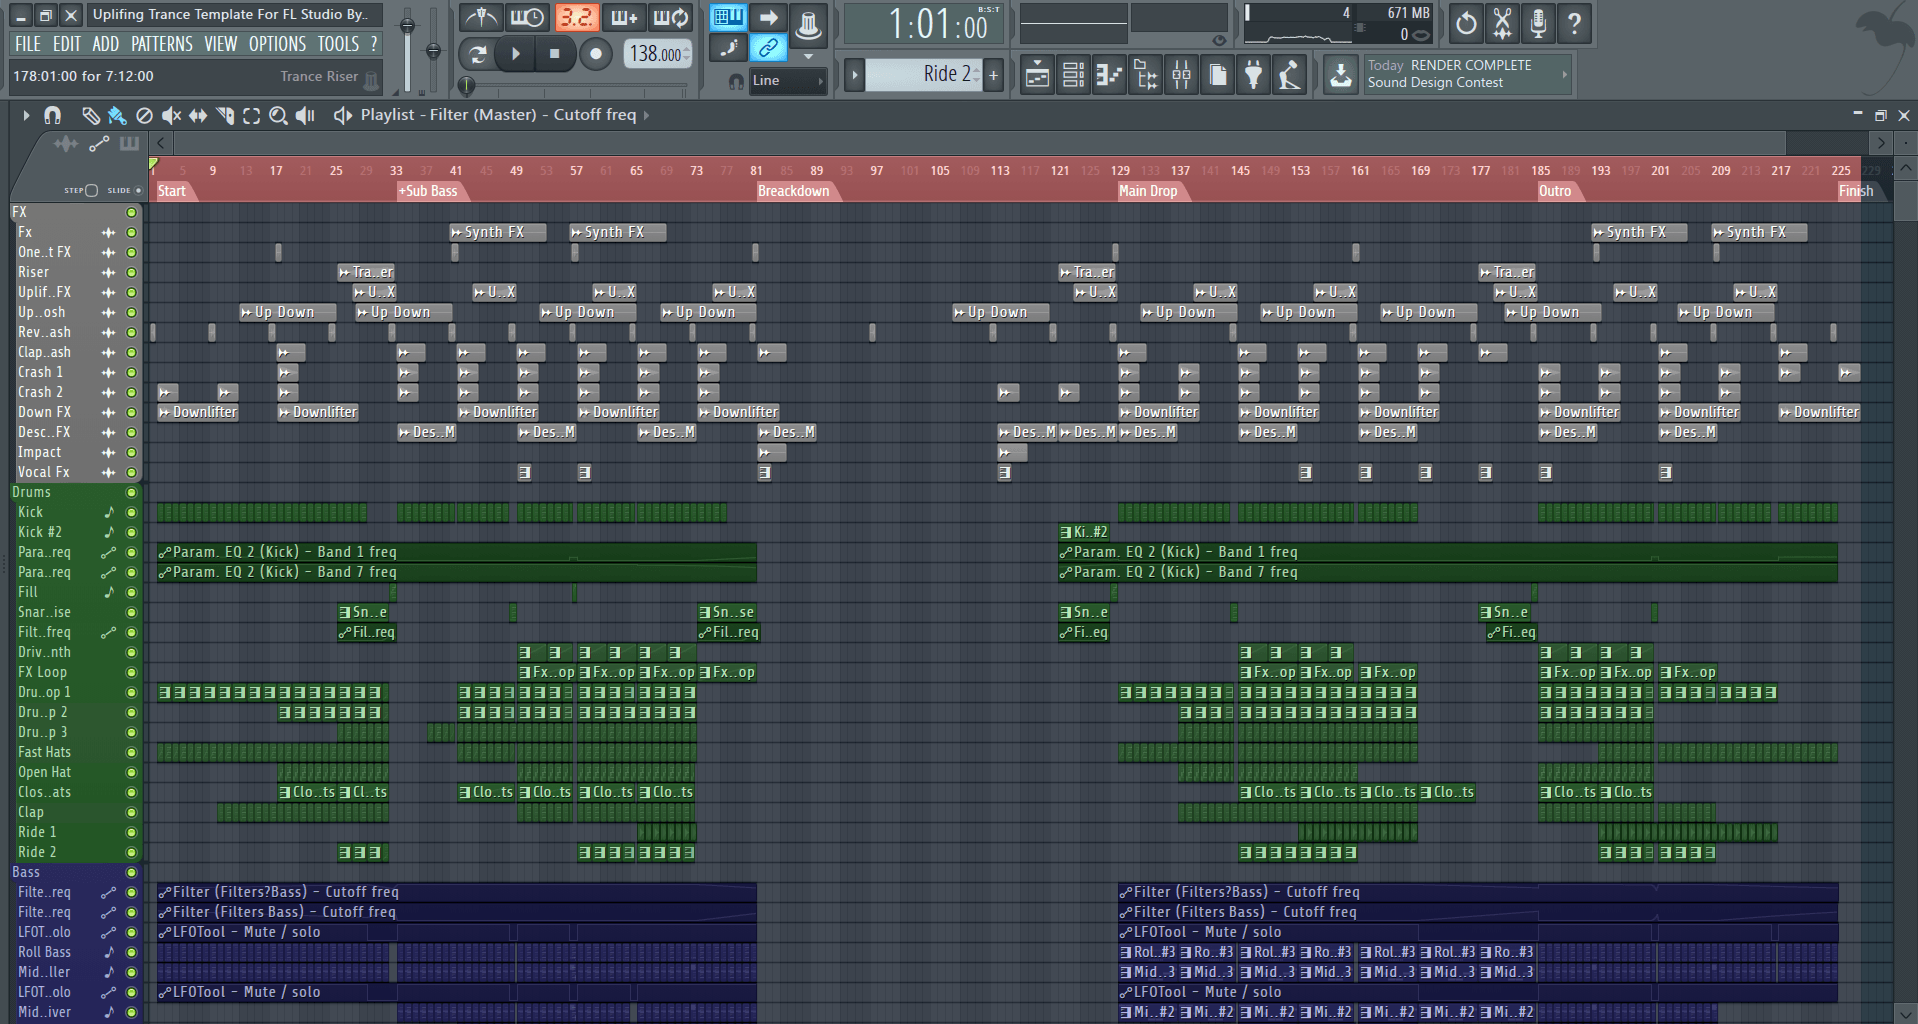 Uplifting-Trance-Template-For-FL-Studio-By-Nick-V-Screenshot